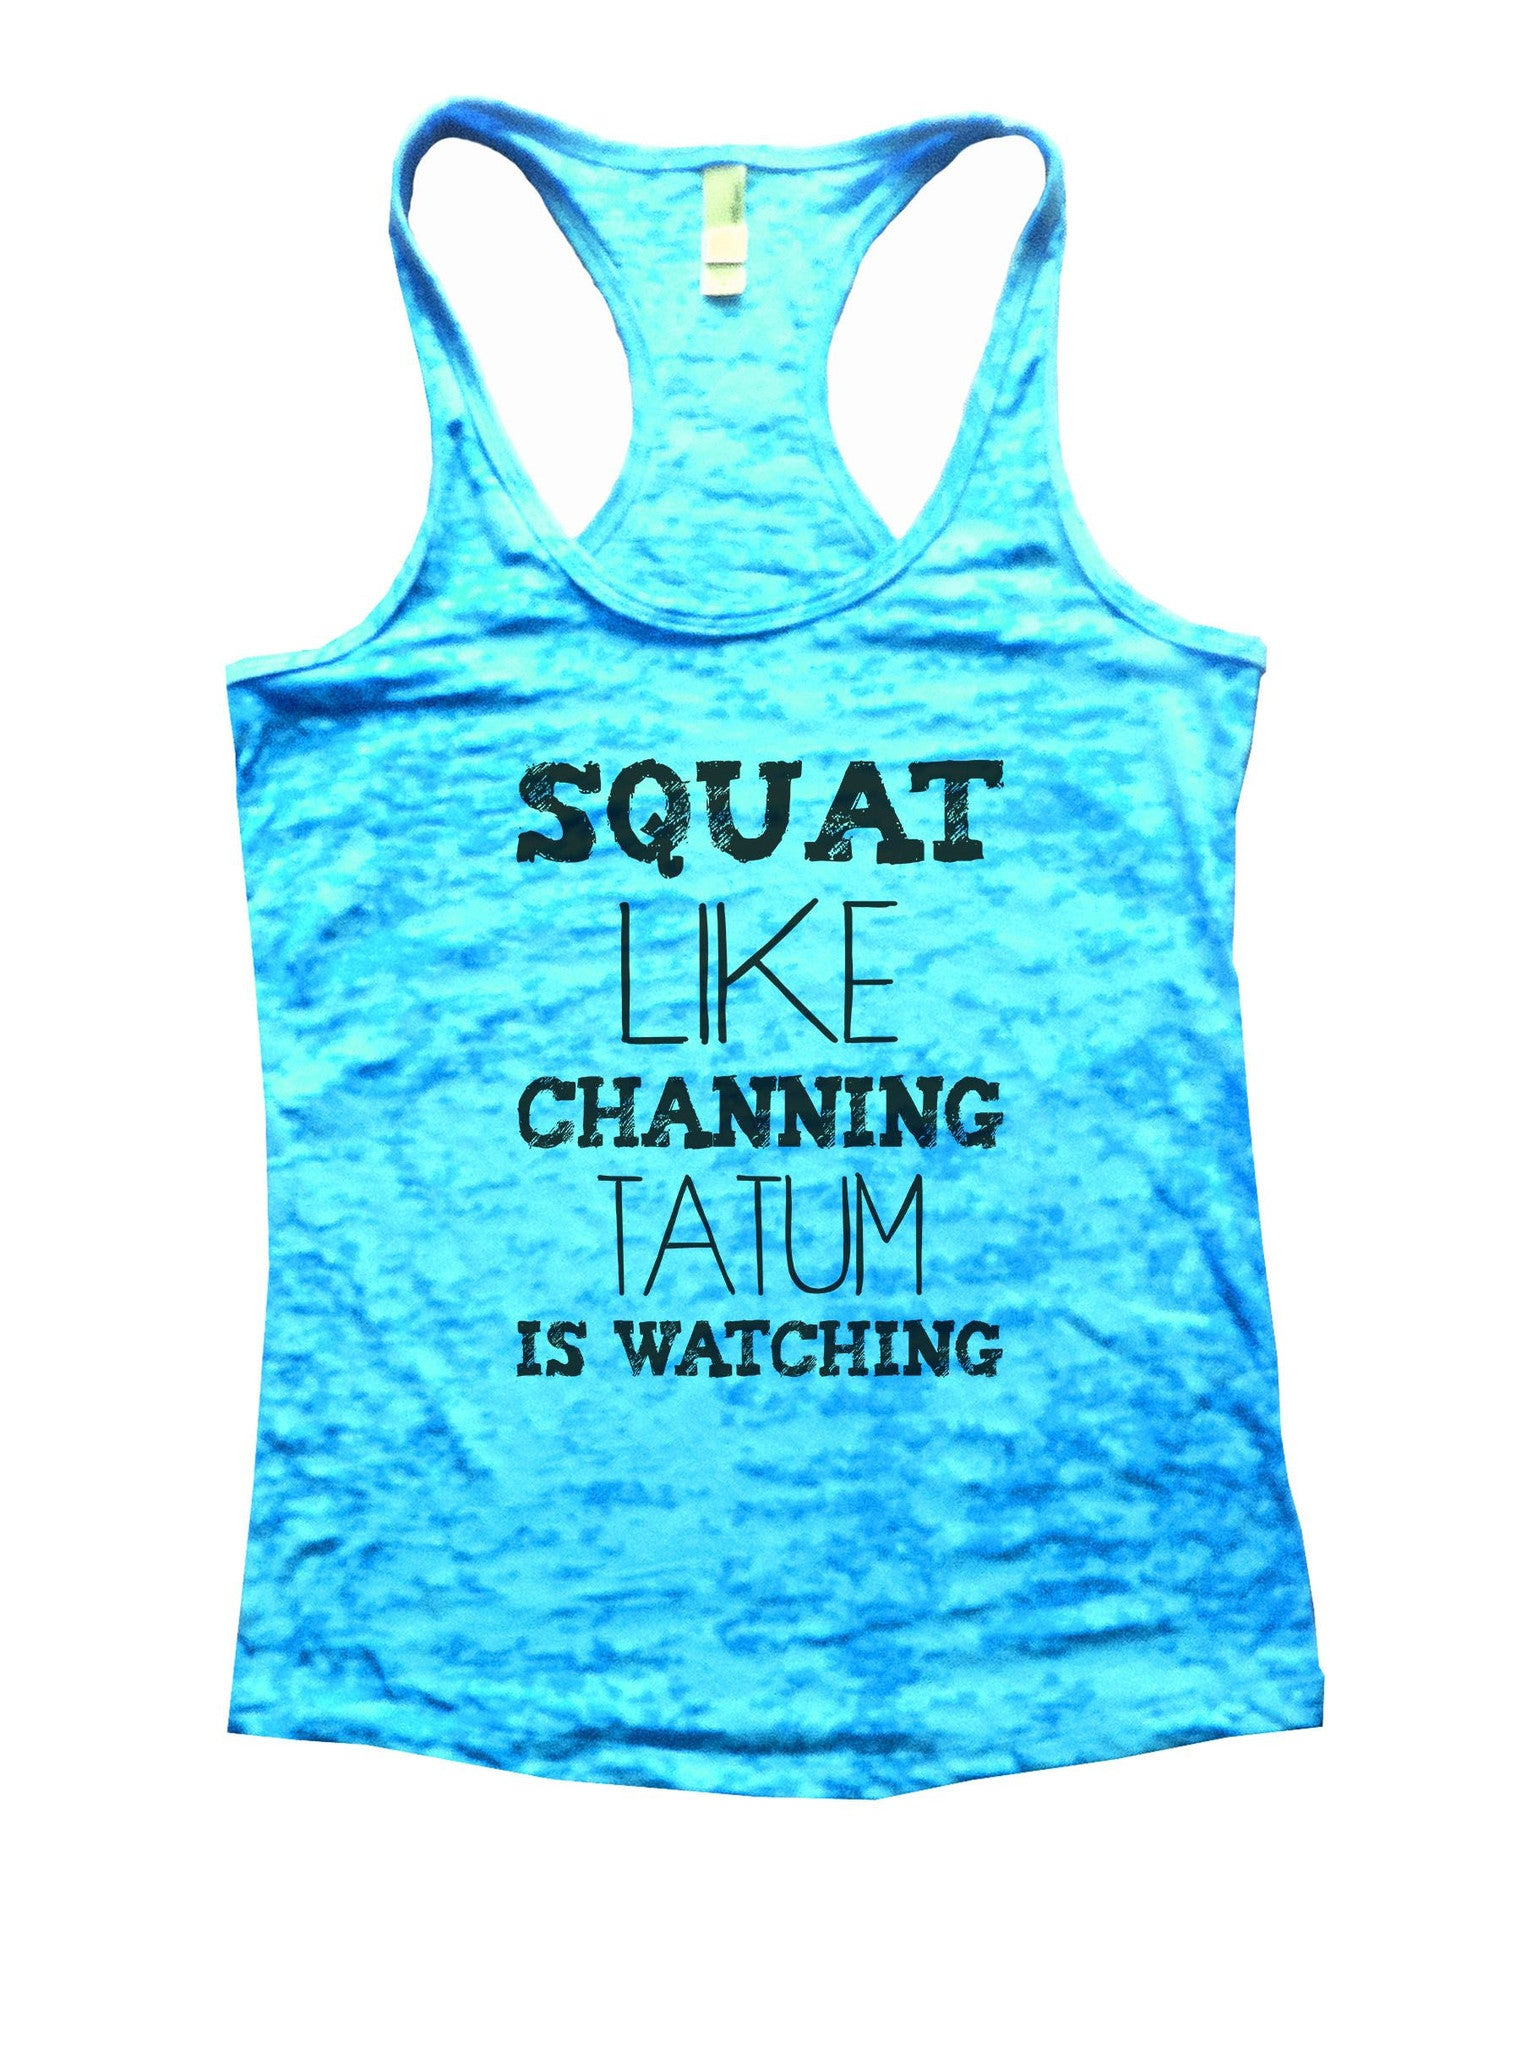 Squat Like Channing Tatum Is Watching Burnout Tank Top By BurnoutTankTops.com - 901 - Funny Shirts Tank Tops Burnouts and Triblends  - 4